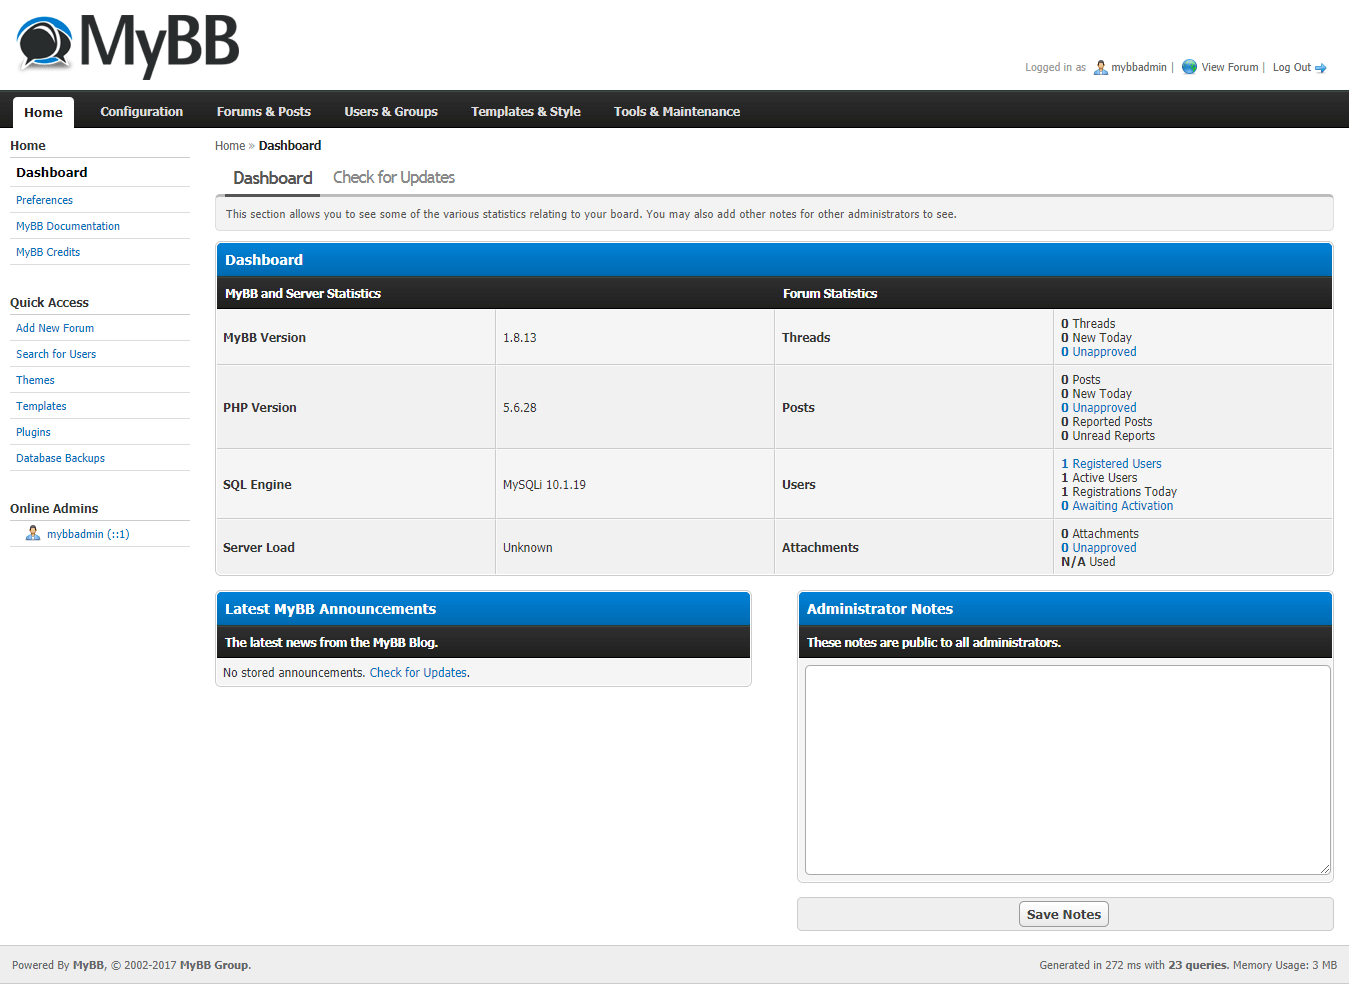 mybb dashboard